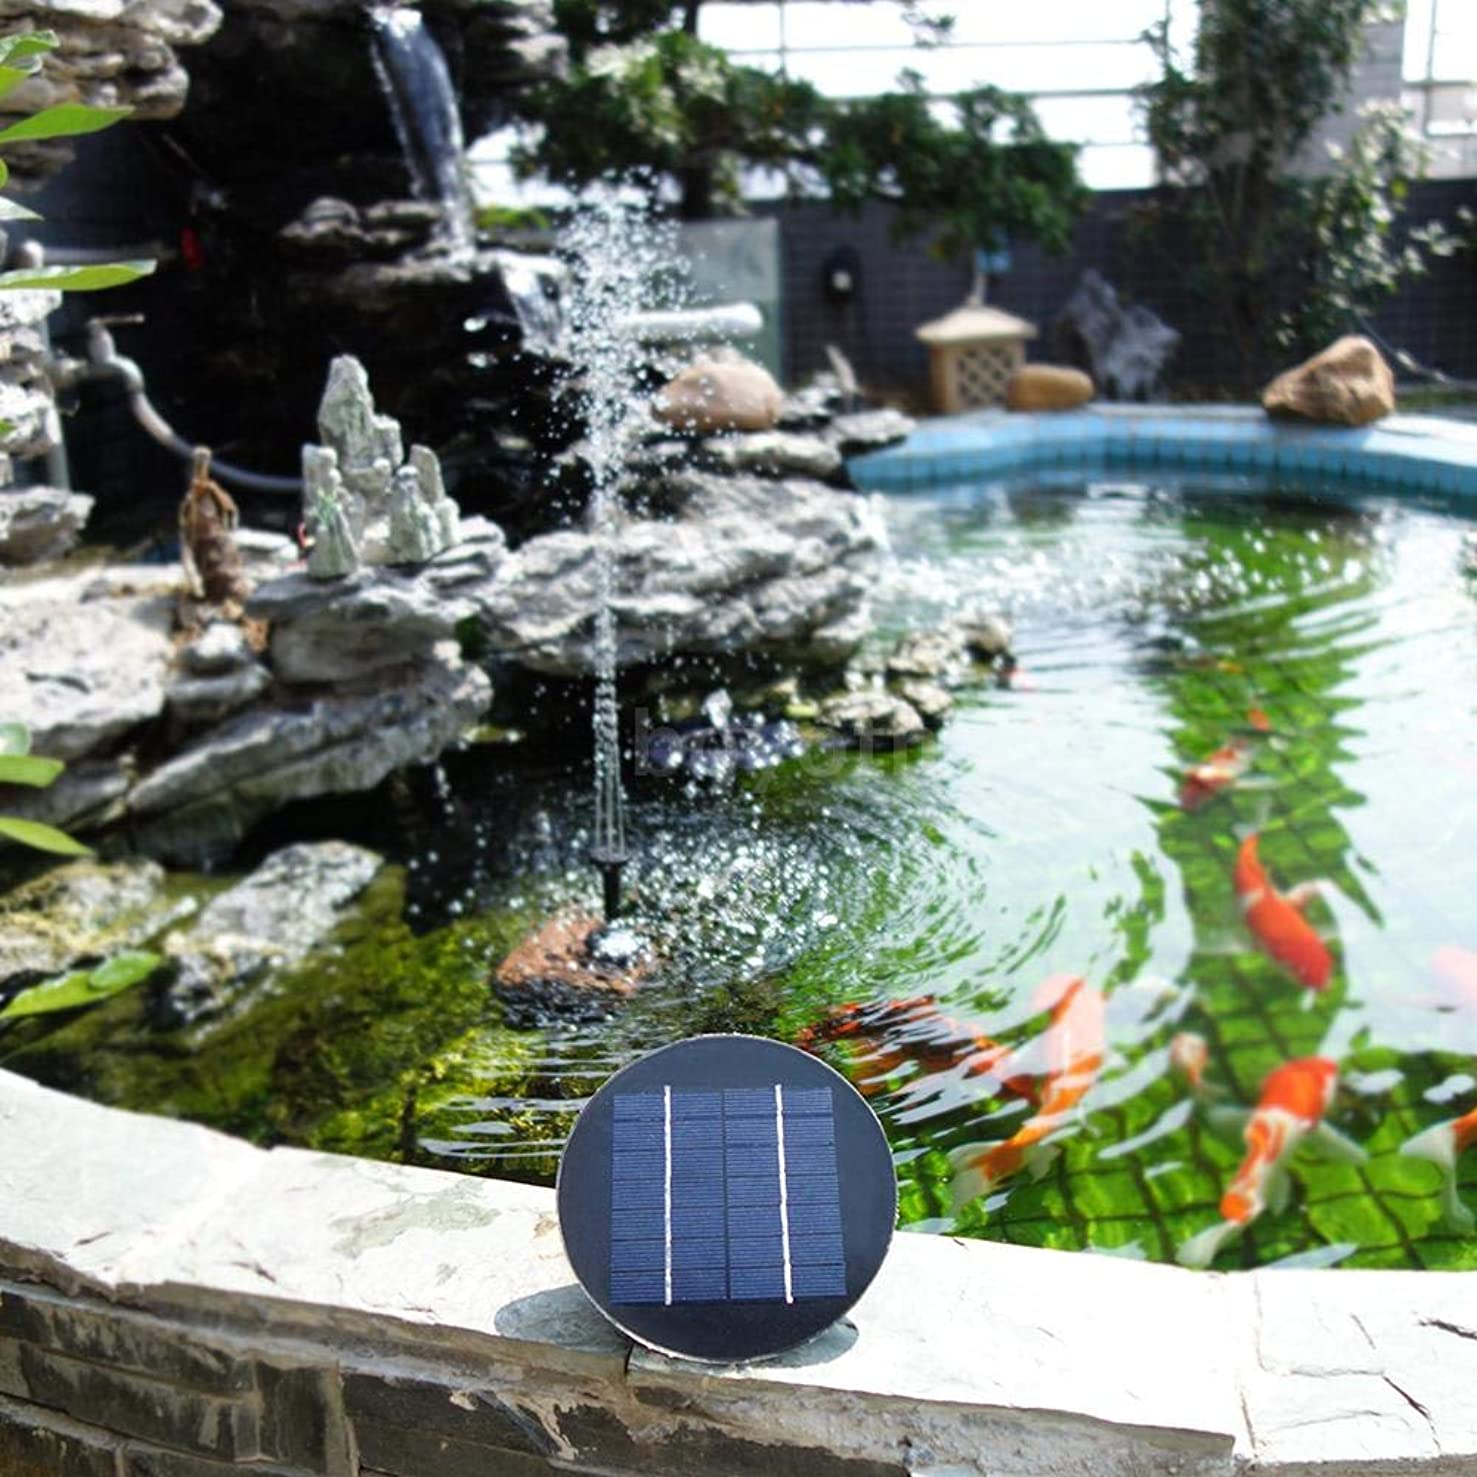 Studyset Solar Fountain 9V 3W Round Shape Water Pump Solar Birdbath Fountain Pump, Solar Outdoor Water Fountain Panel Kit for Bird Bath,Small Pond,Garden and Lawn